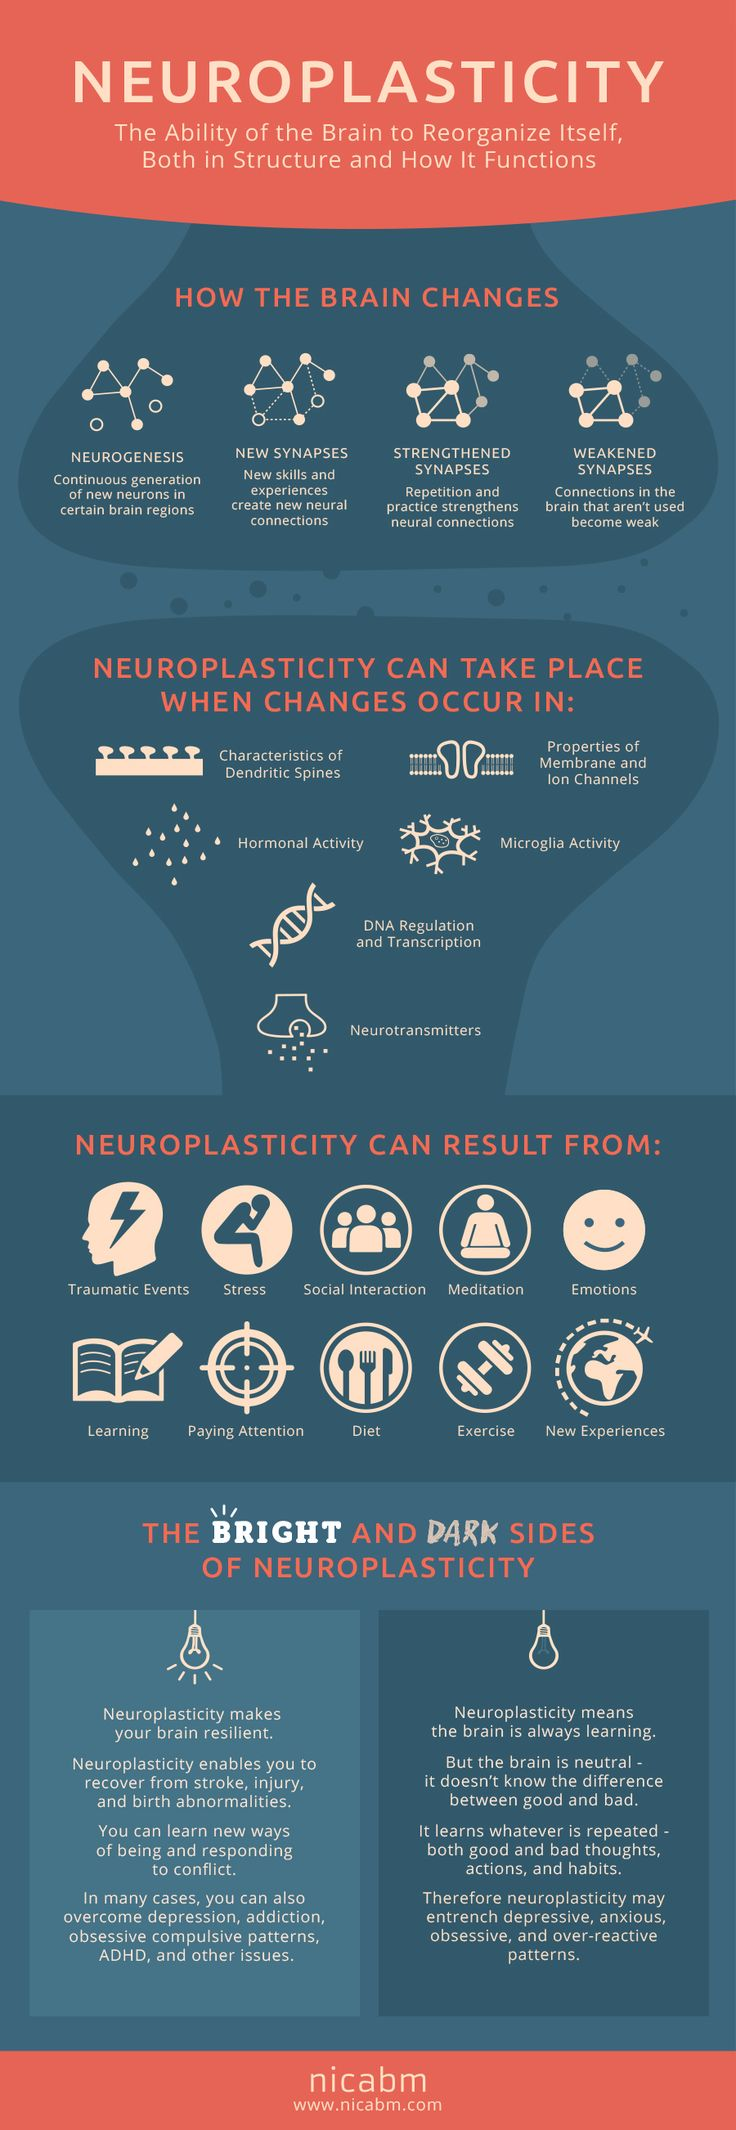 http://www.nicabm.com/brain-how-does-neuroplasticity-work/